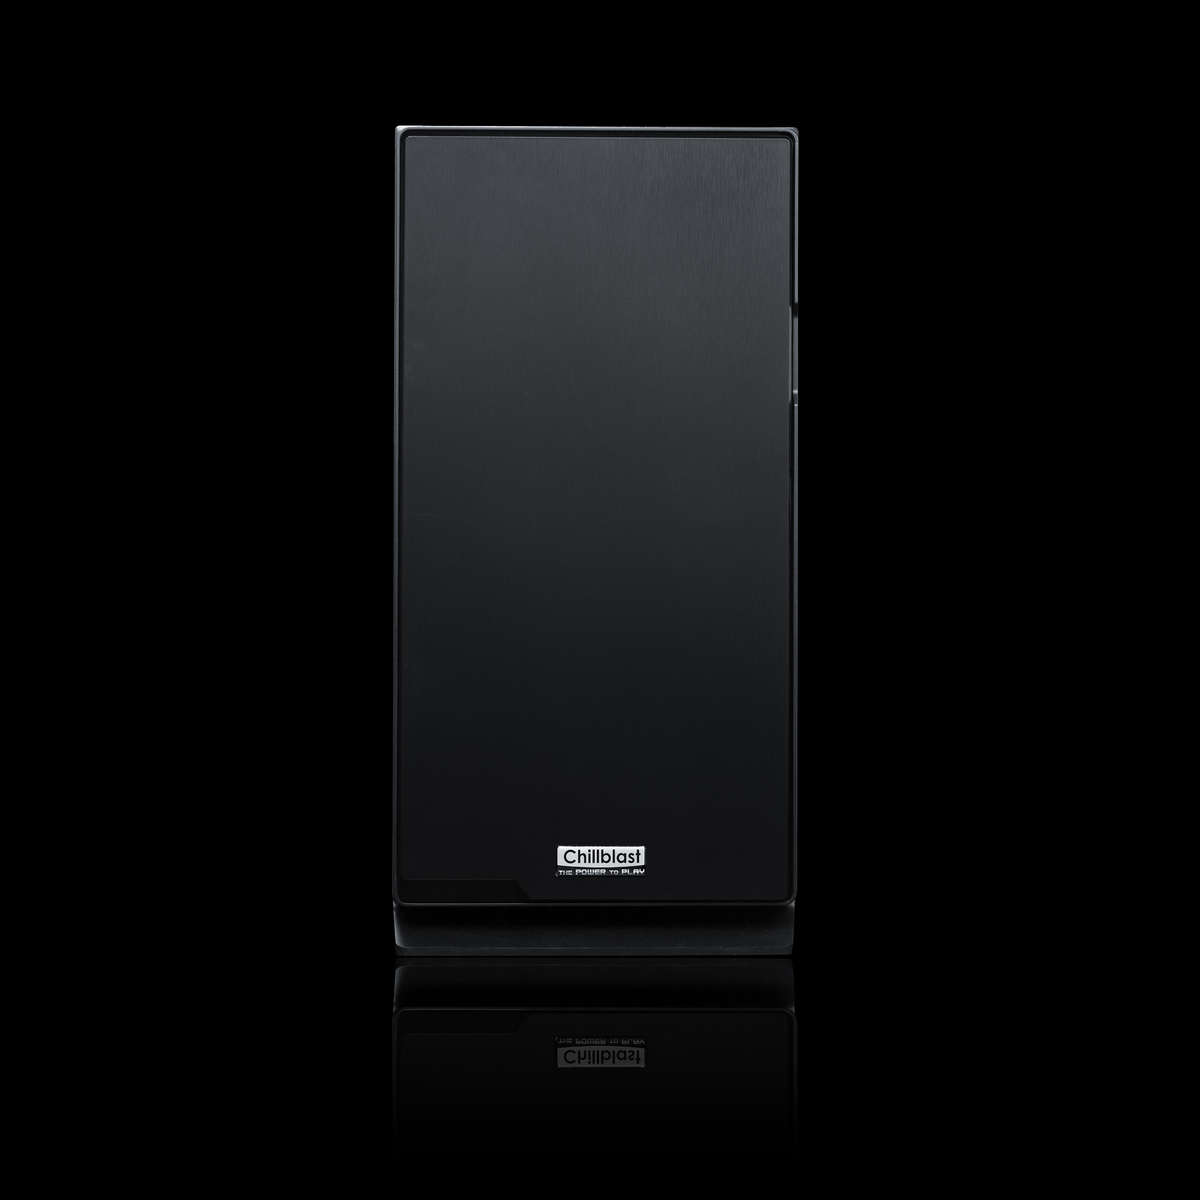 Chillblast Fusion Orion i3 Family PC